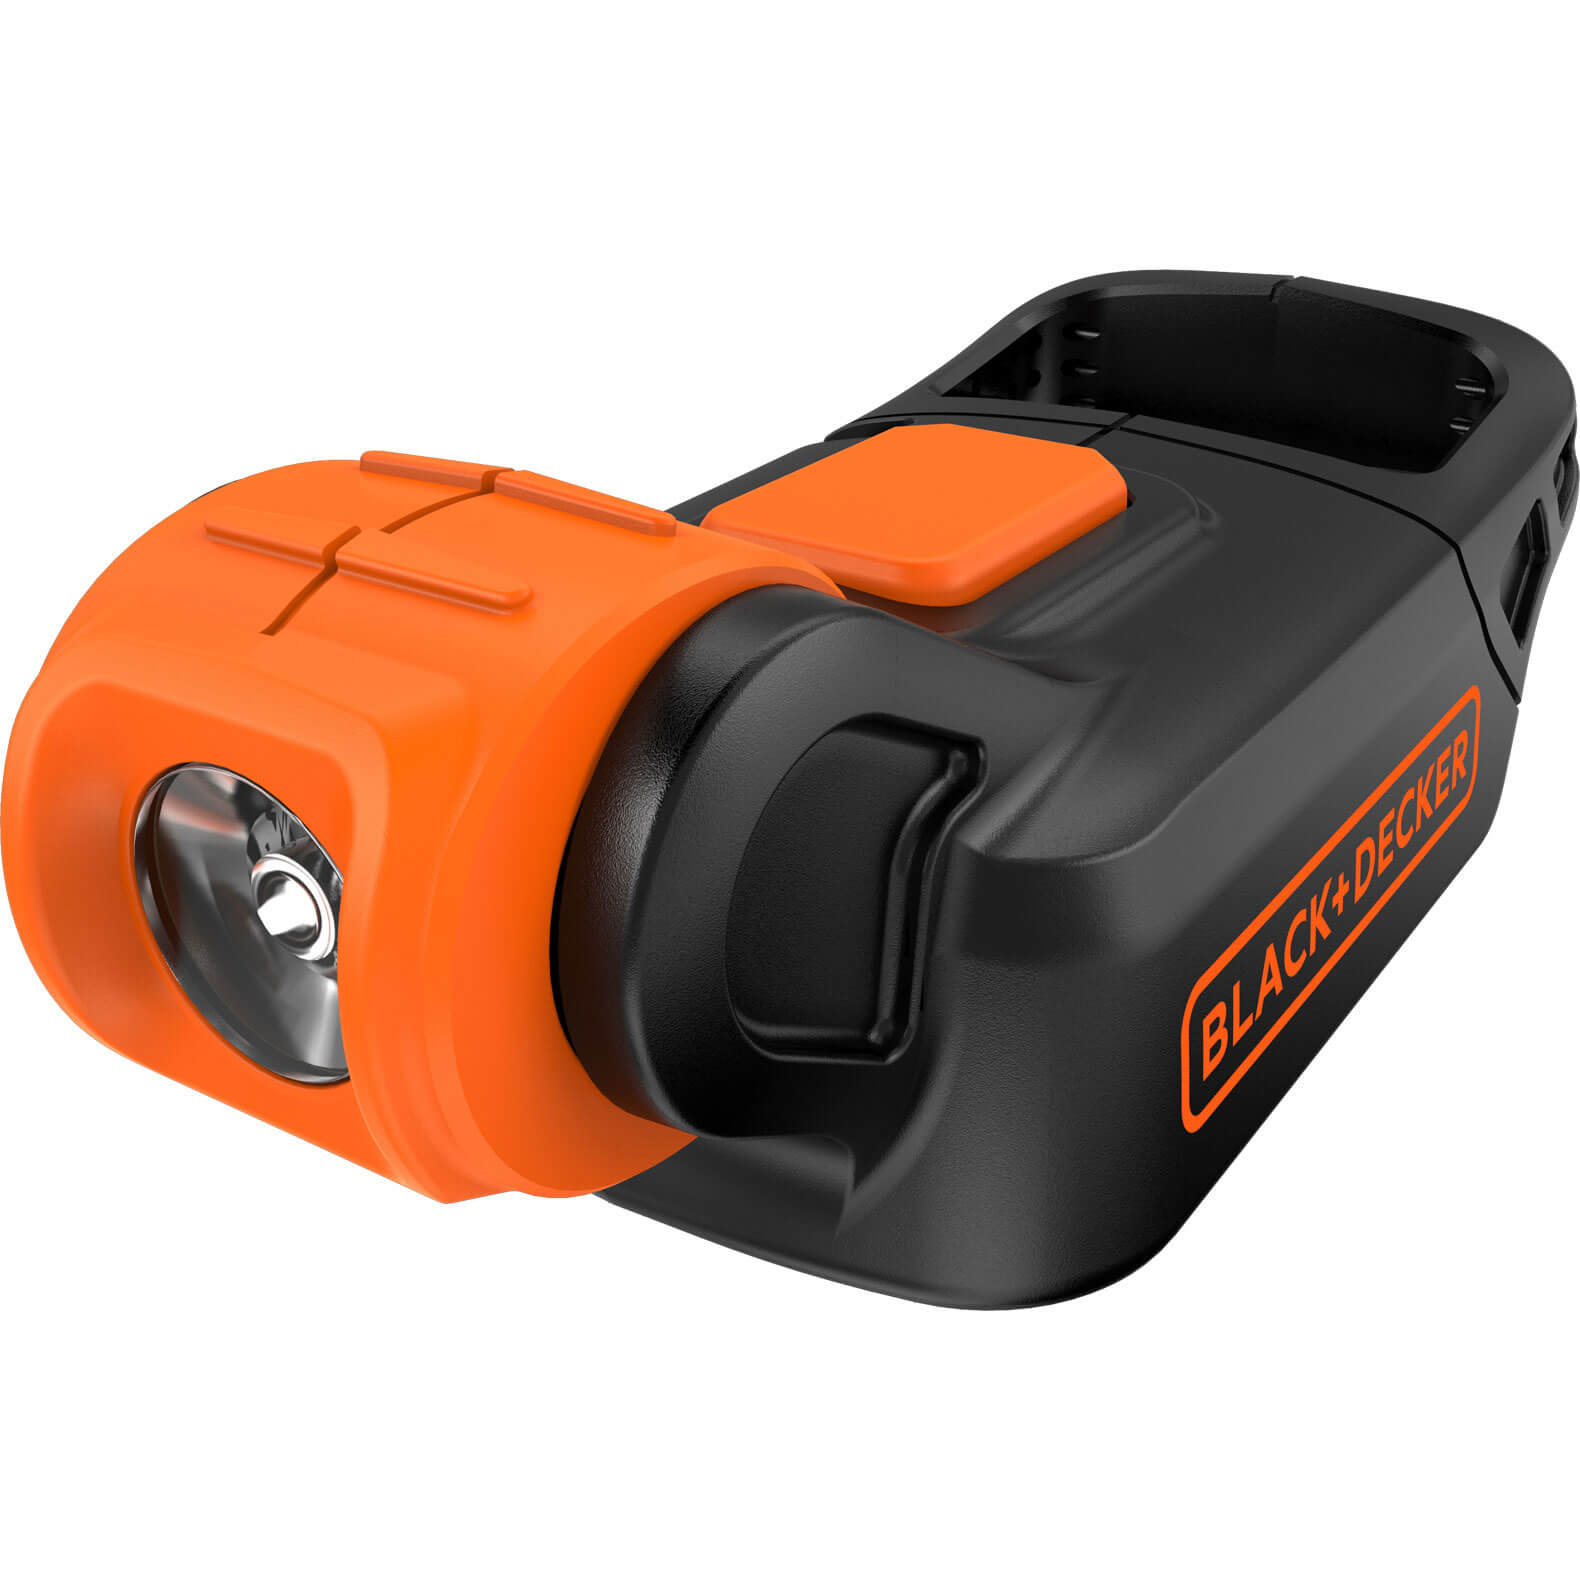 Image of Black & Decker BDCCF18N 18v Cordless Compact Flash Light without Battery or Charger